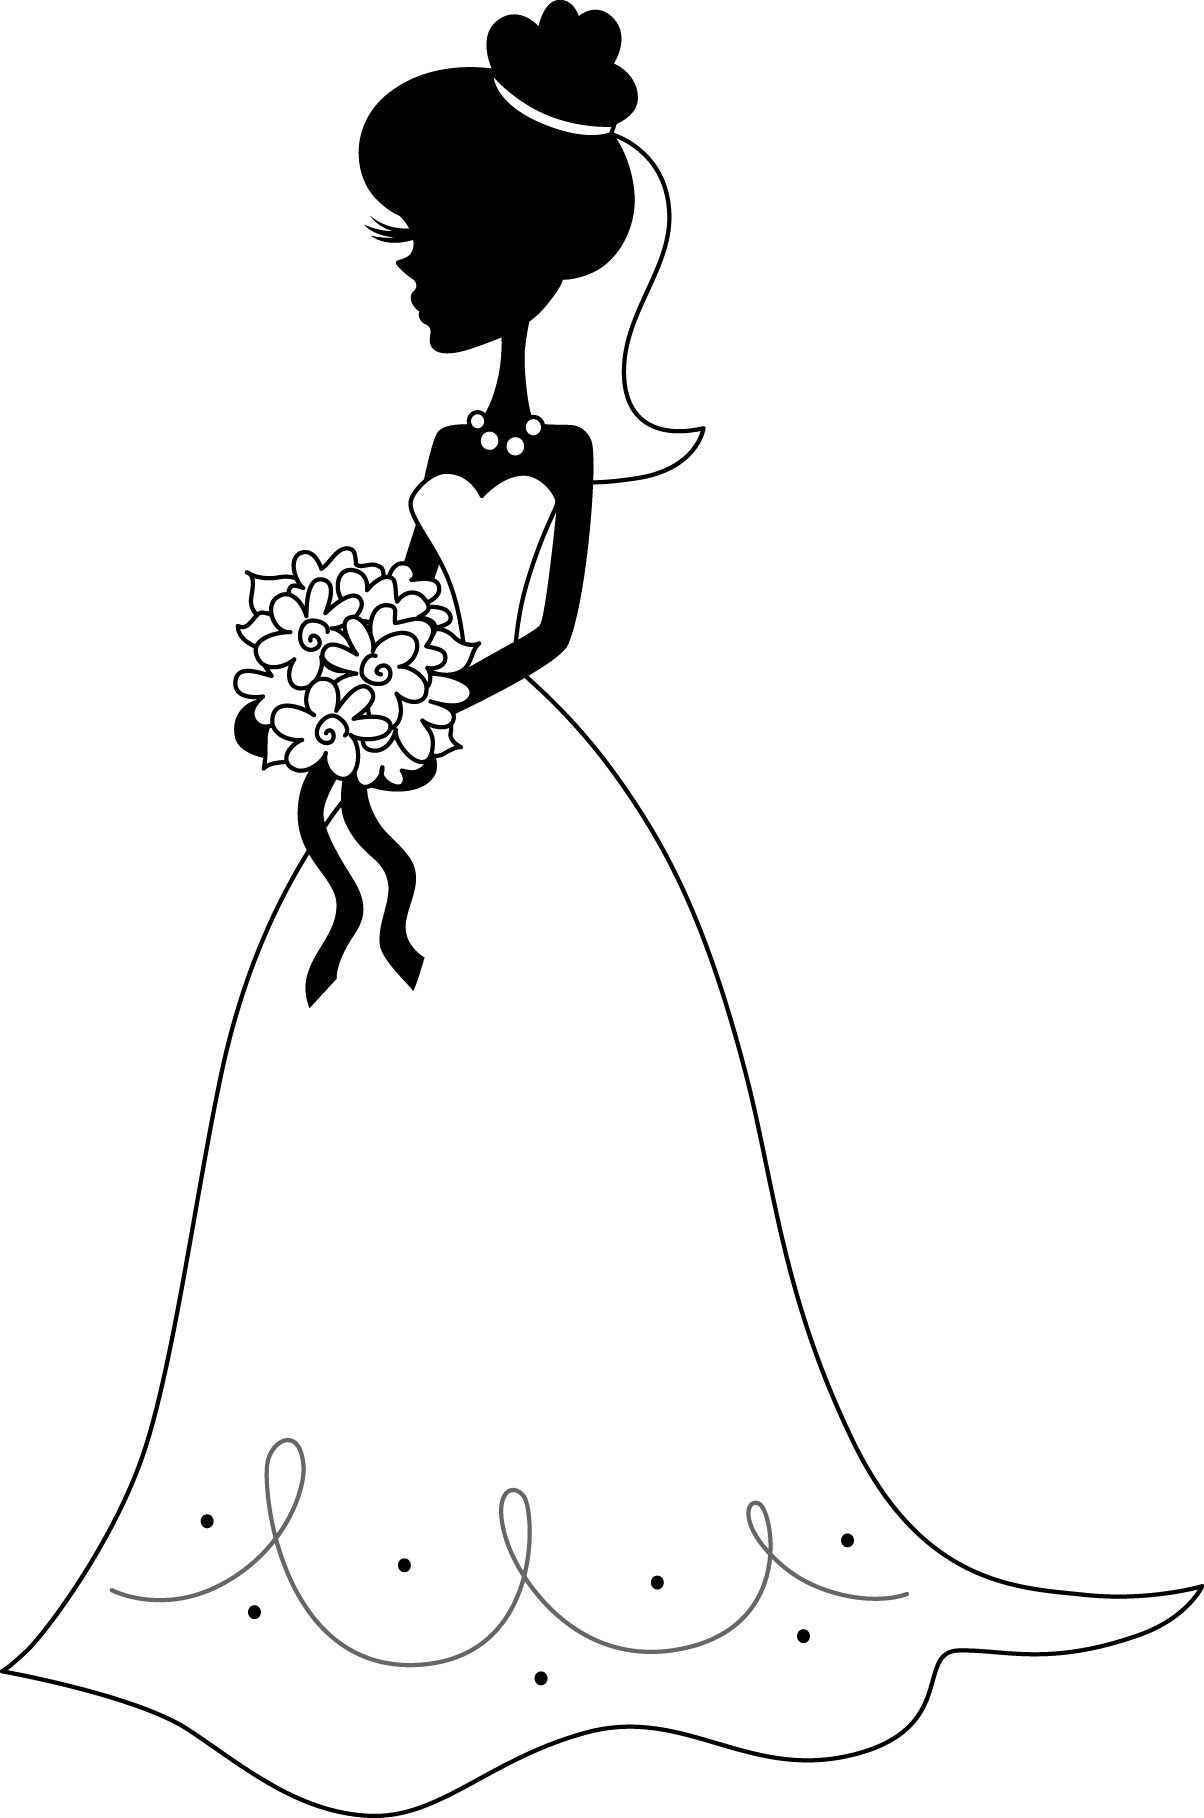 graphic free download Bridal clipart. Bride transparent background free